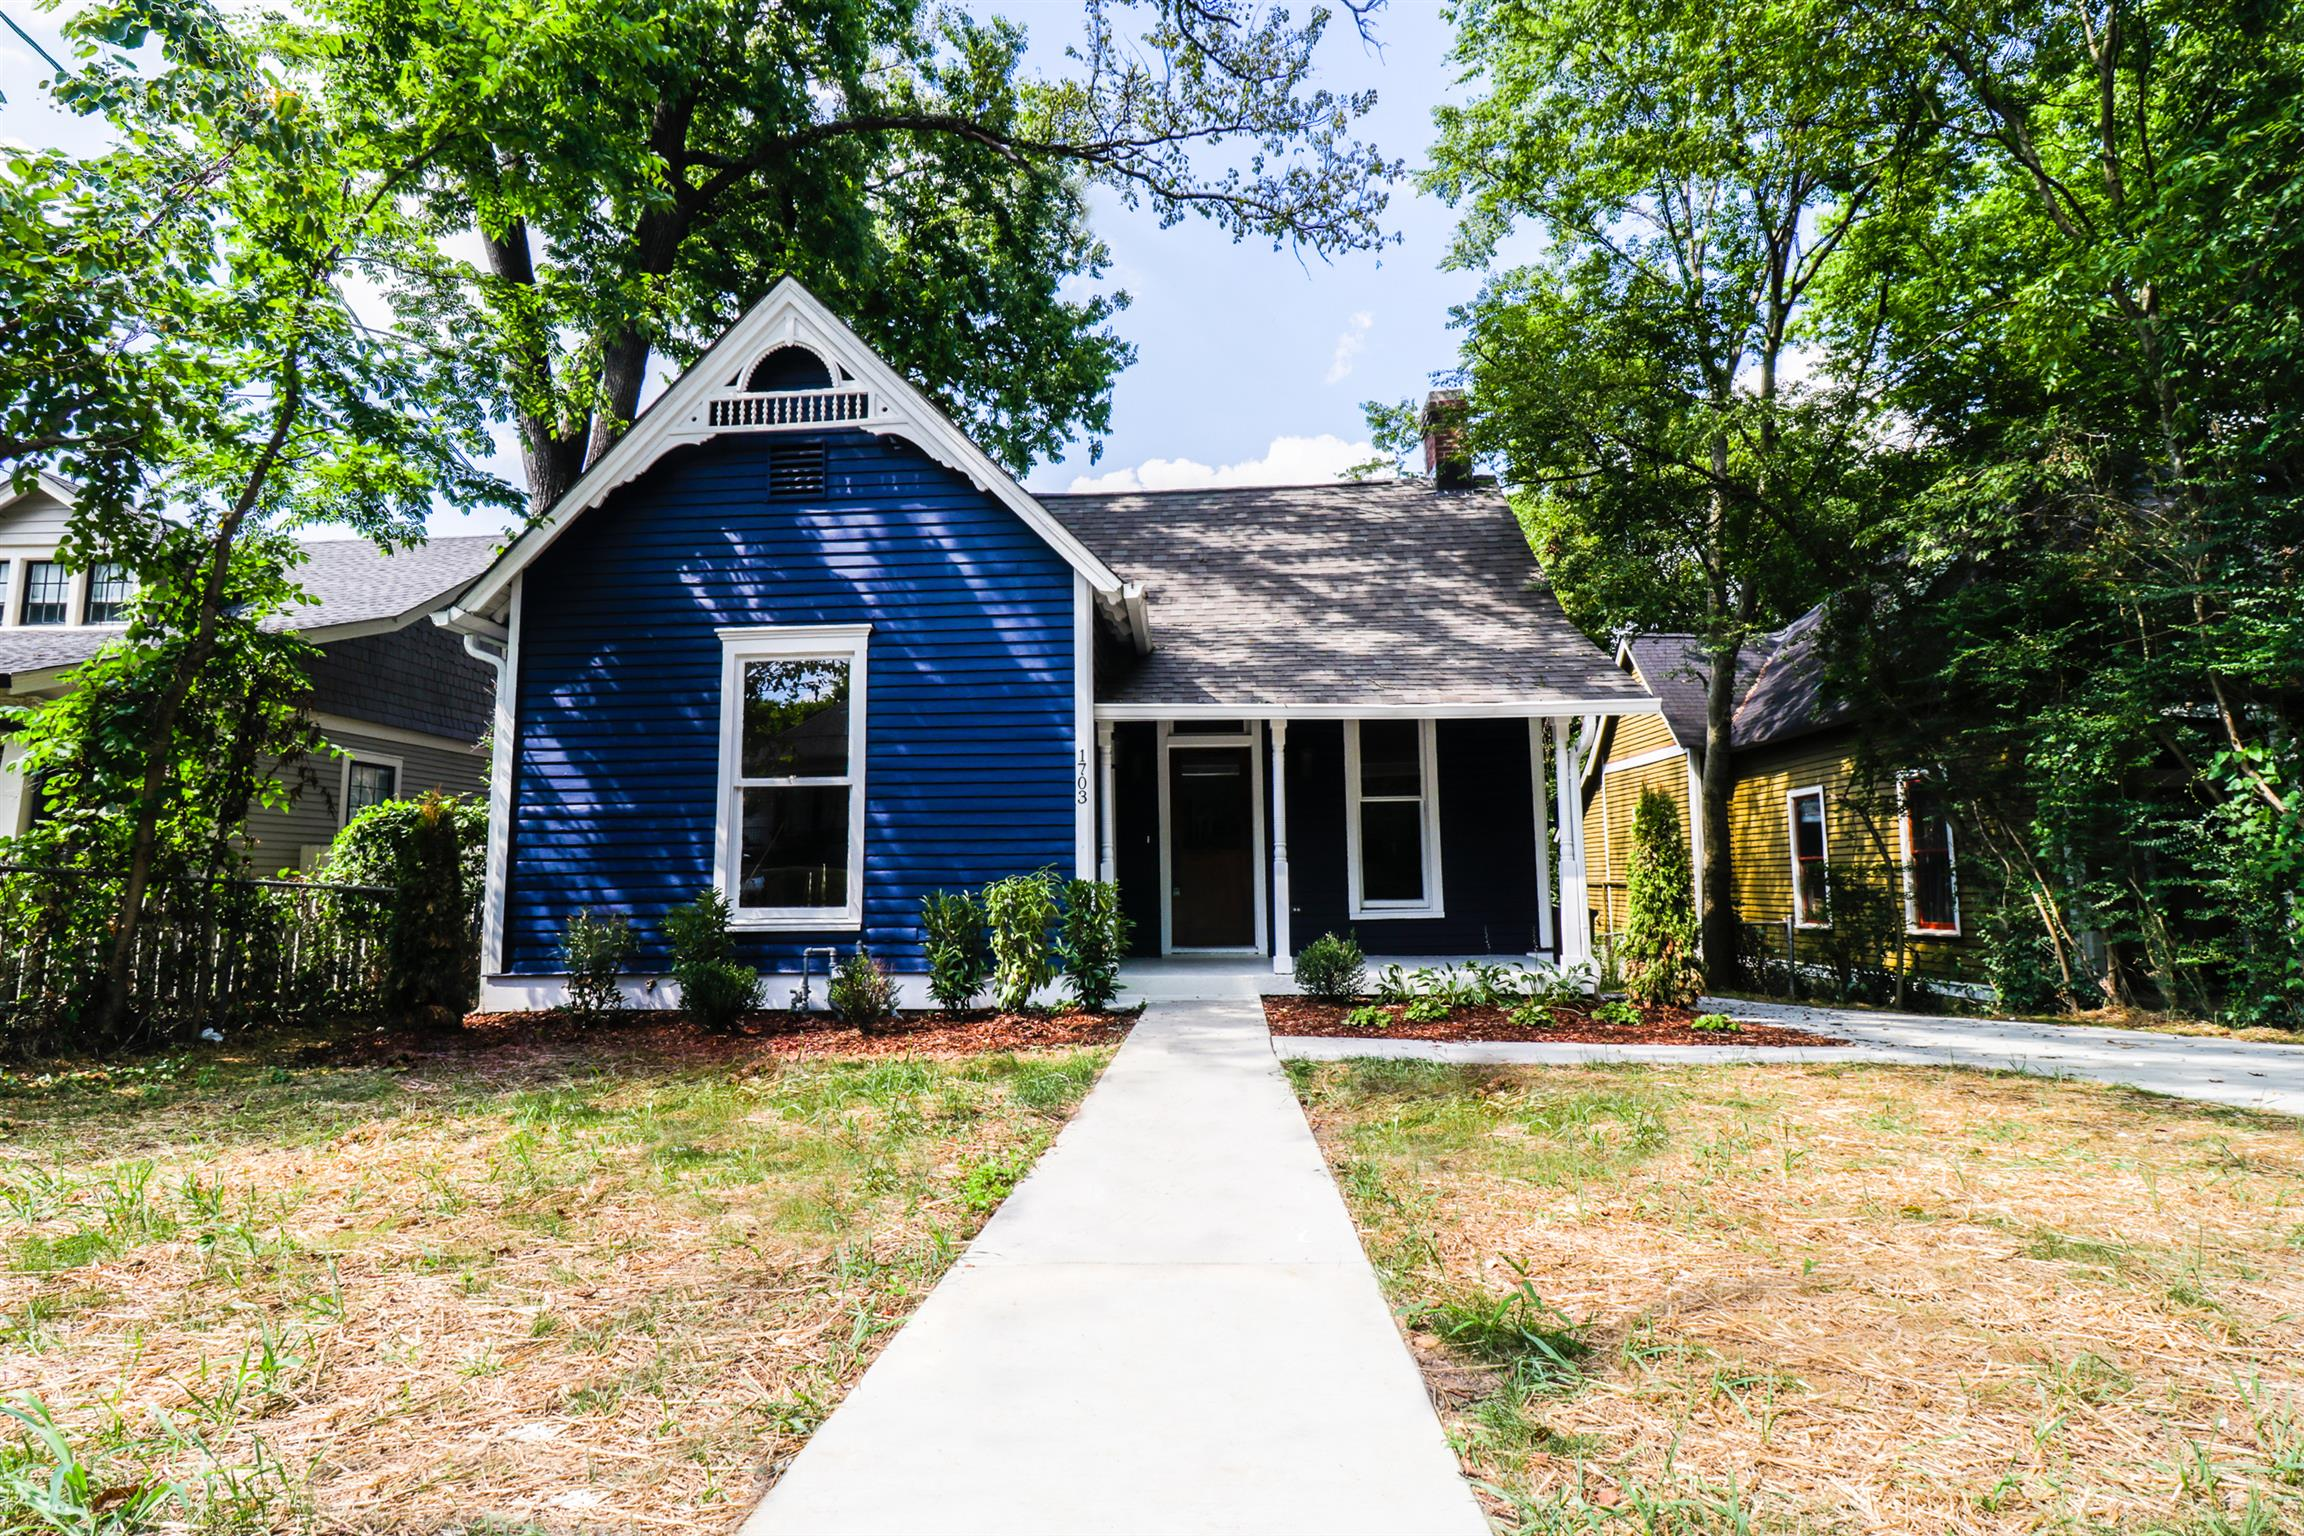 1703 Forrest Ave, Nashville, TN 37206 - Nashville, TN real estate listing